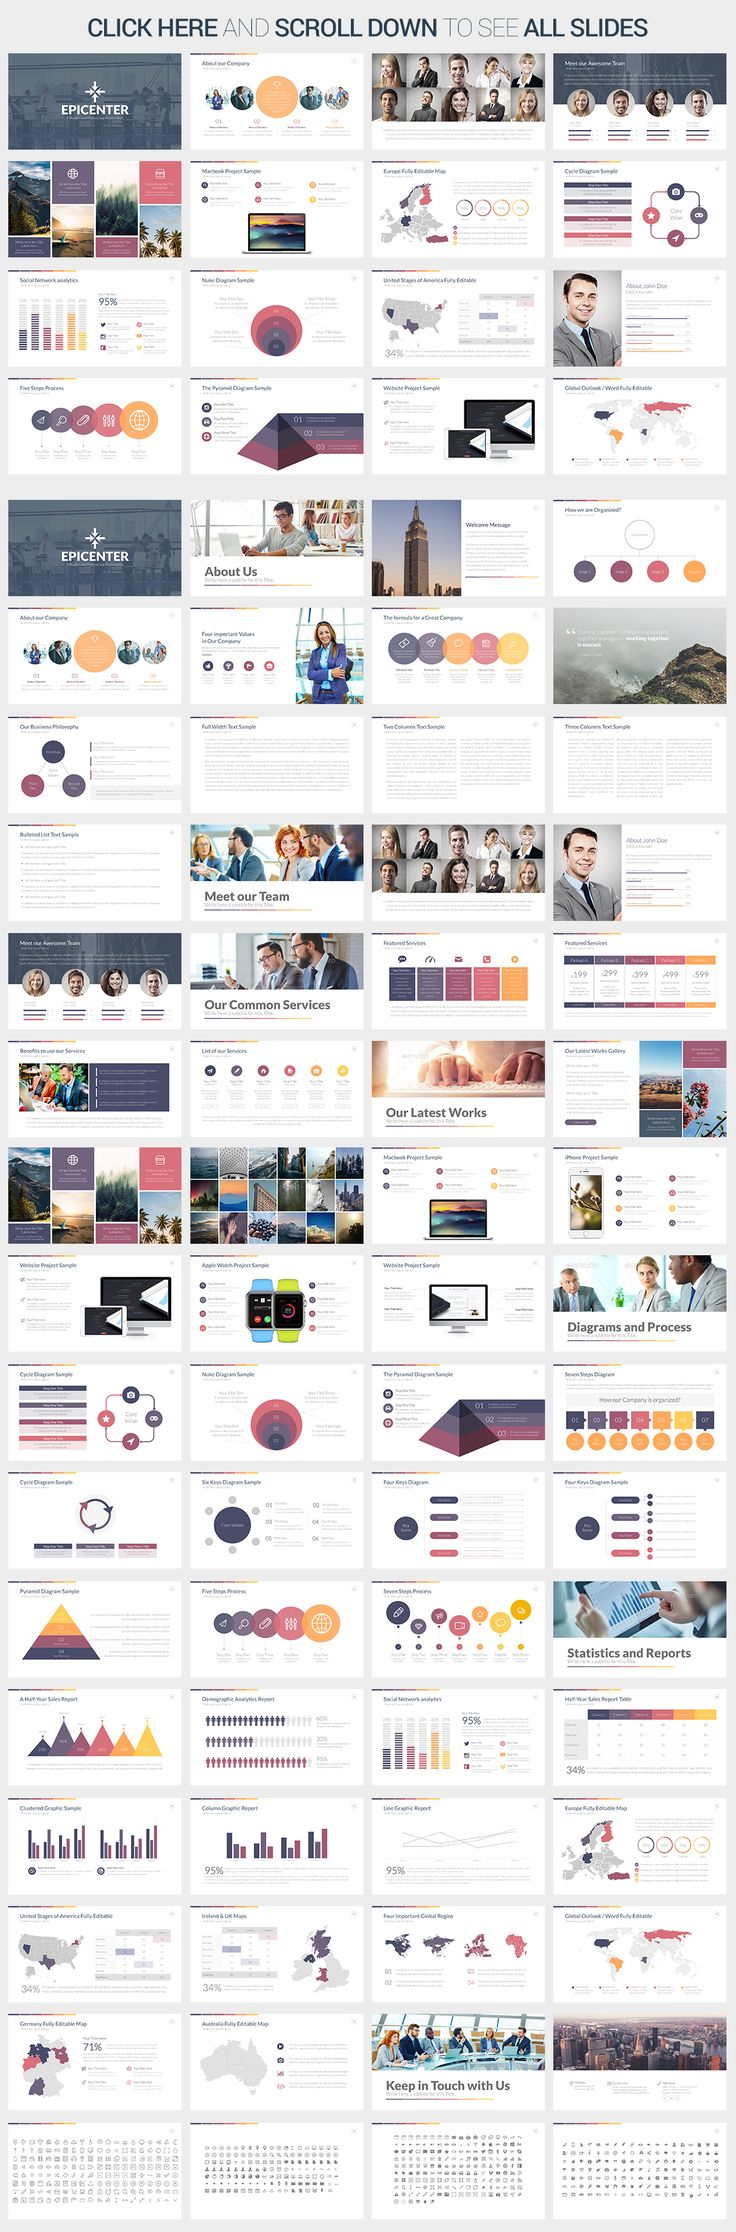 Epicenter PowerPoint Template by SlidePro on Creative Market